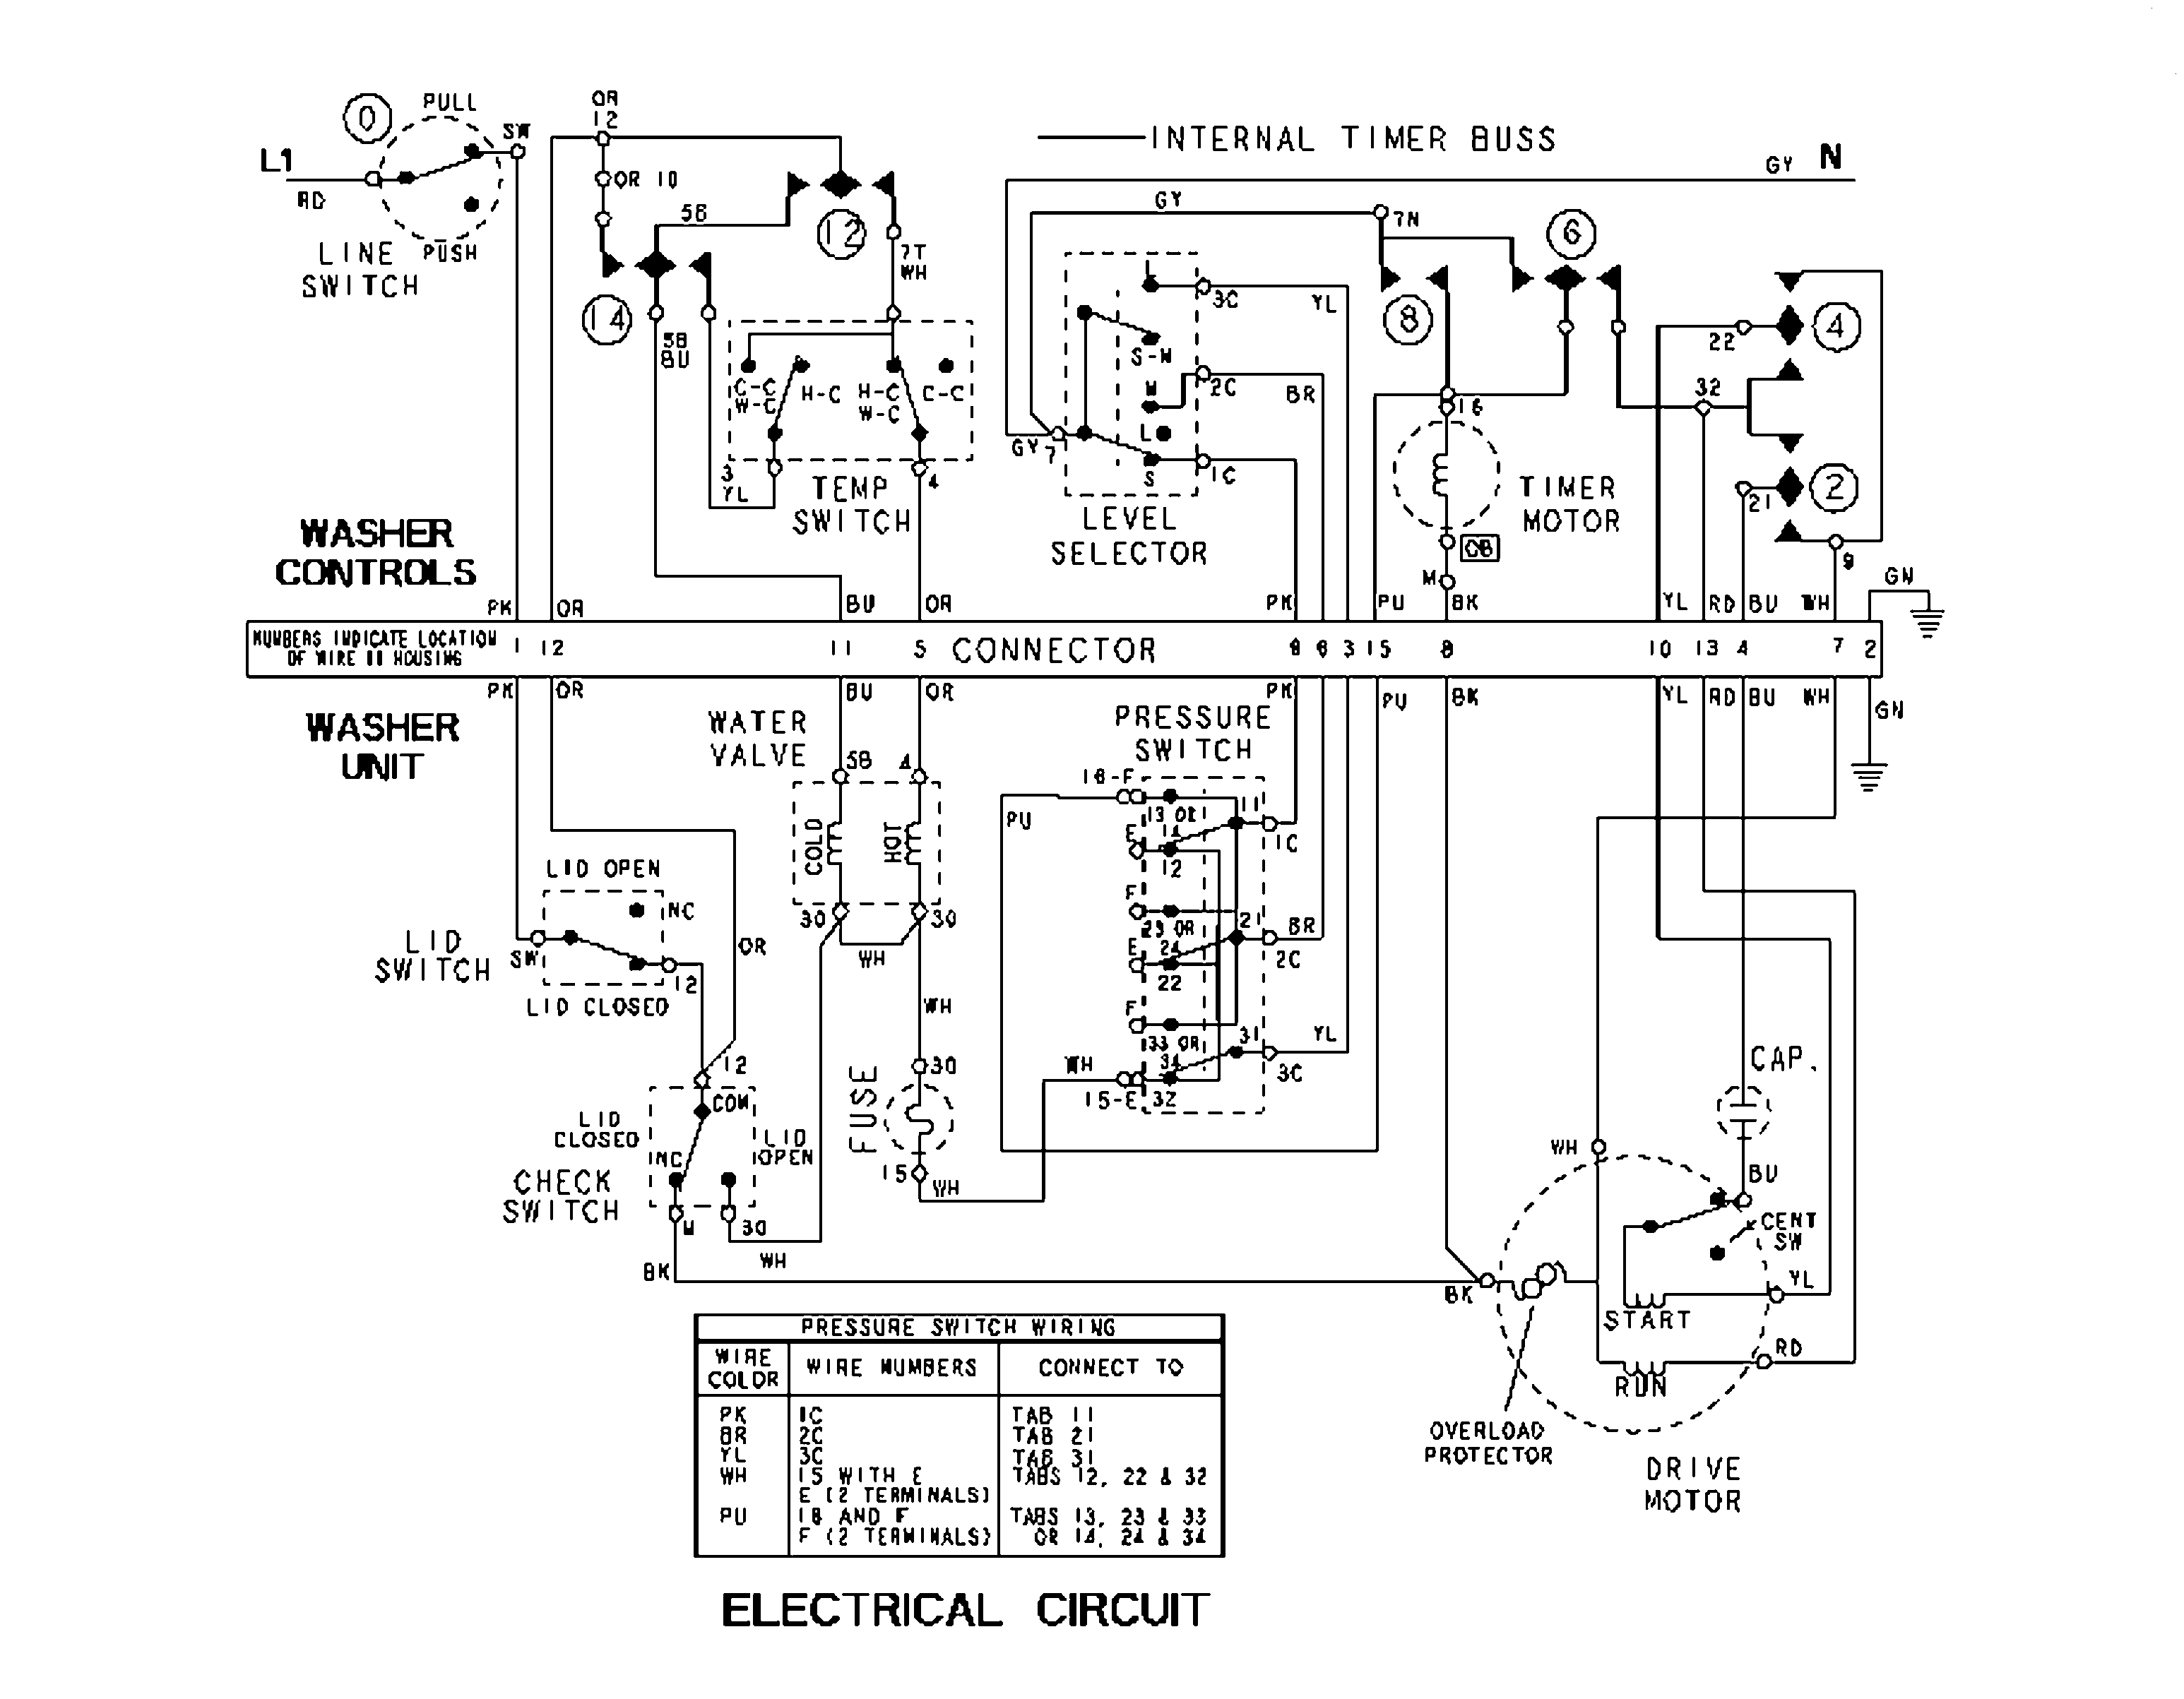 M0404006 00018?resize=665%2C517 marathon motor wiring diagram marathon motors wiring diagram marathon electric generator wiring diagram at virtualis.co